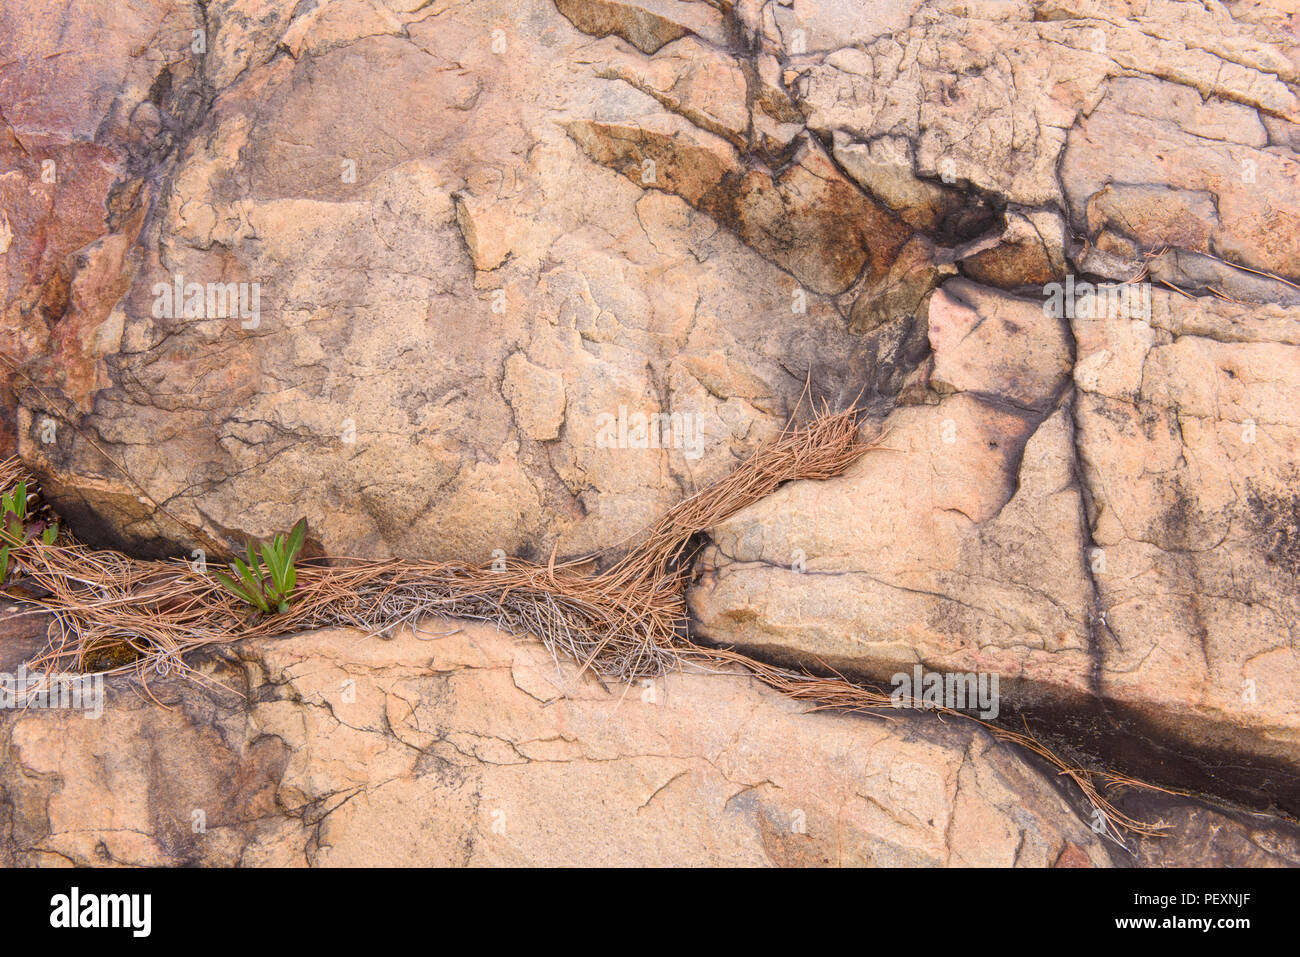 Rock outcrops and pine straw, Greater Sudbury, Ontario, Canada - Stock Image